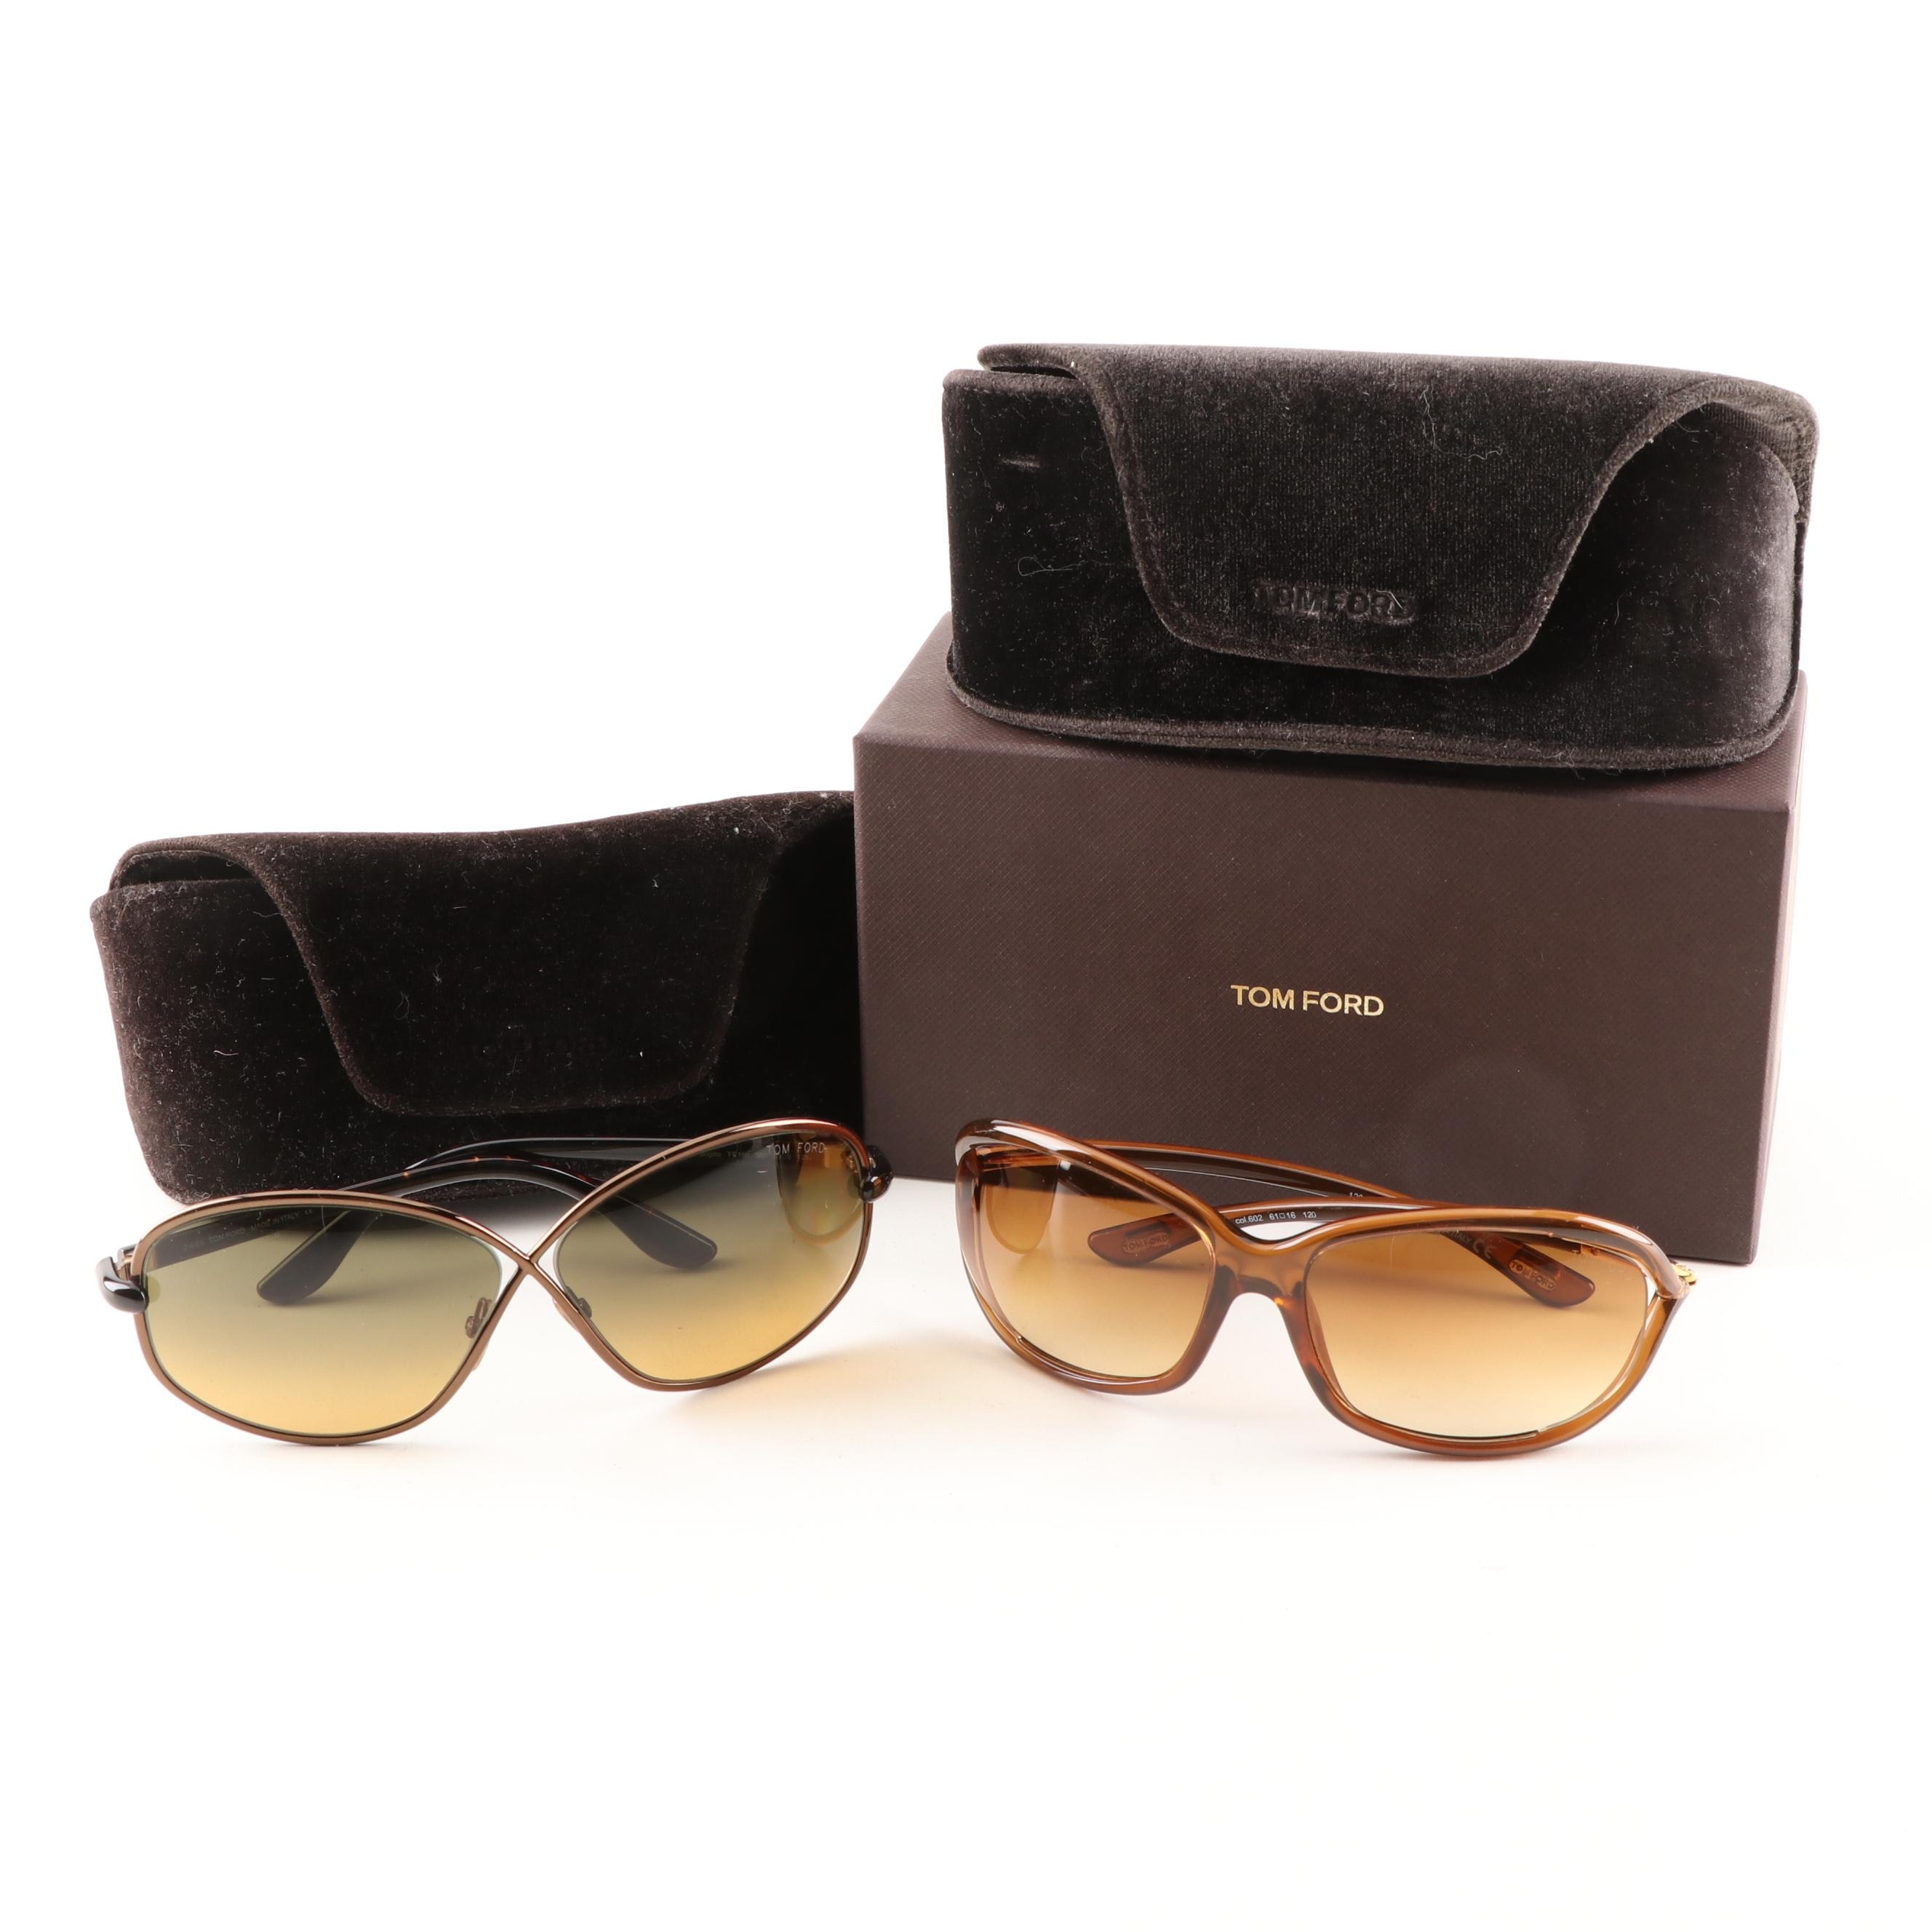 Tom Ford Brigitte TF160 and Jennifer TF8 Sunglasses Grouping